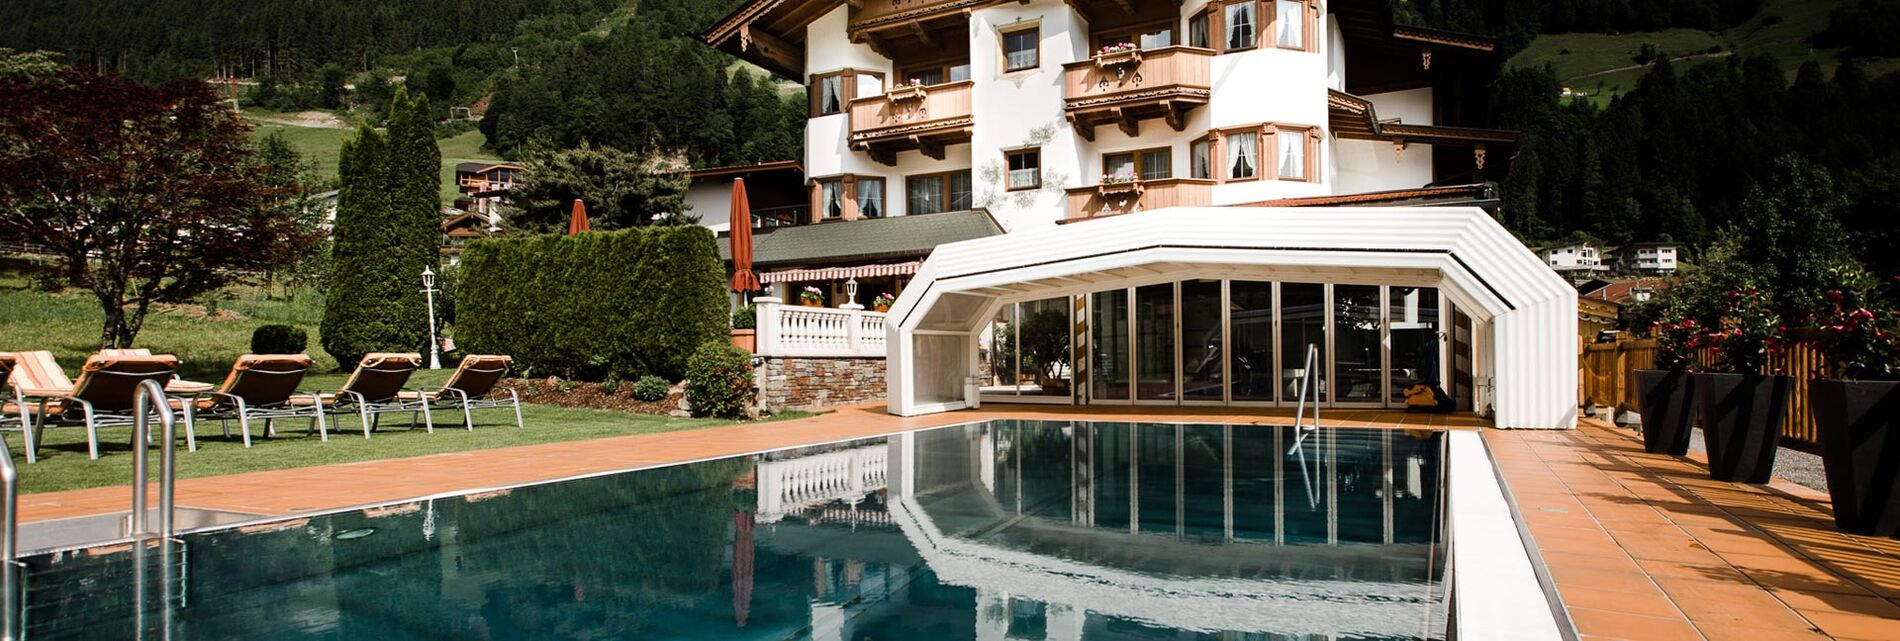 4 Star Hotel With Swimming Pool In Finkenberg